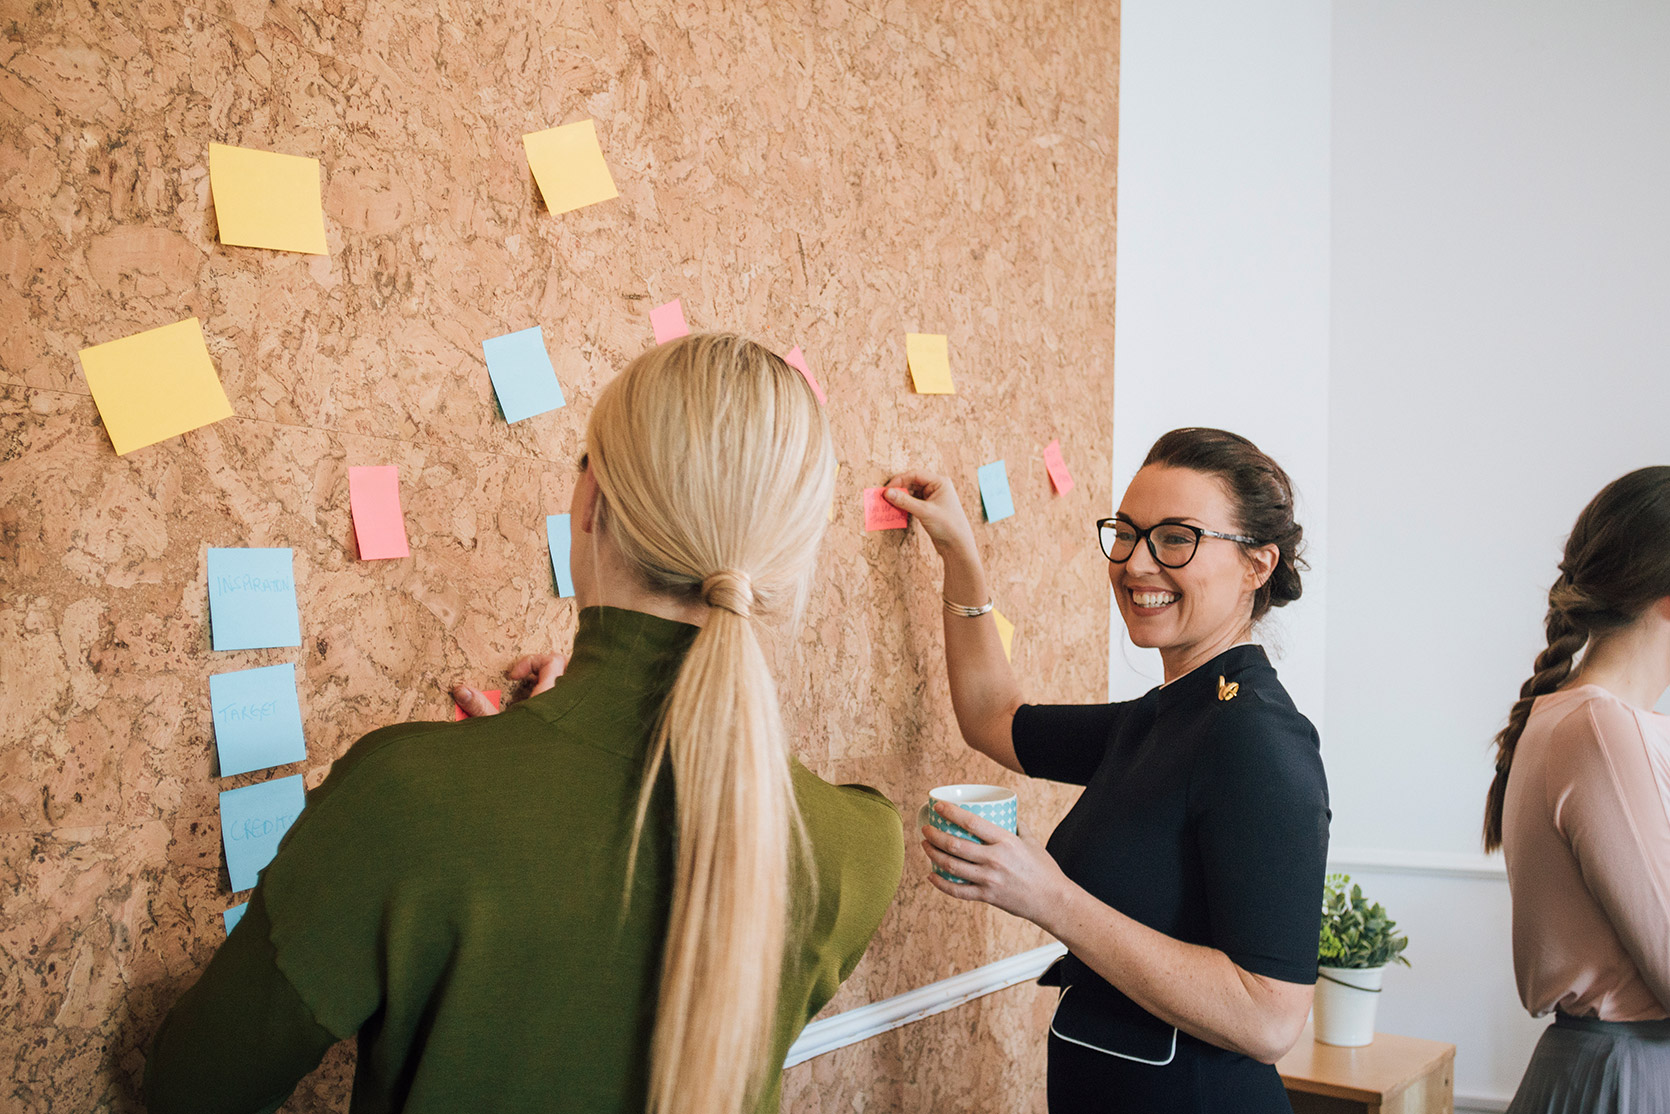 Changing from sole trader to limited company, image of people sticking notes on a cork board | Crunch